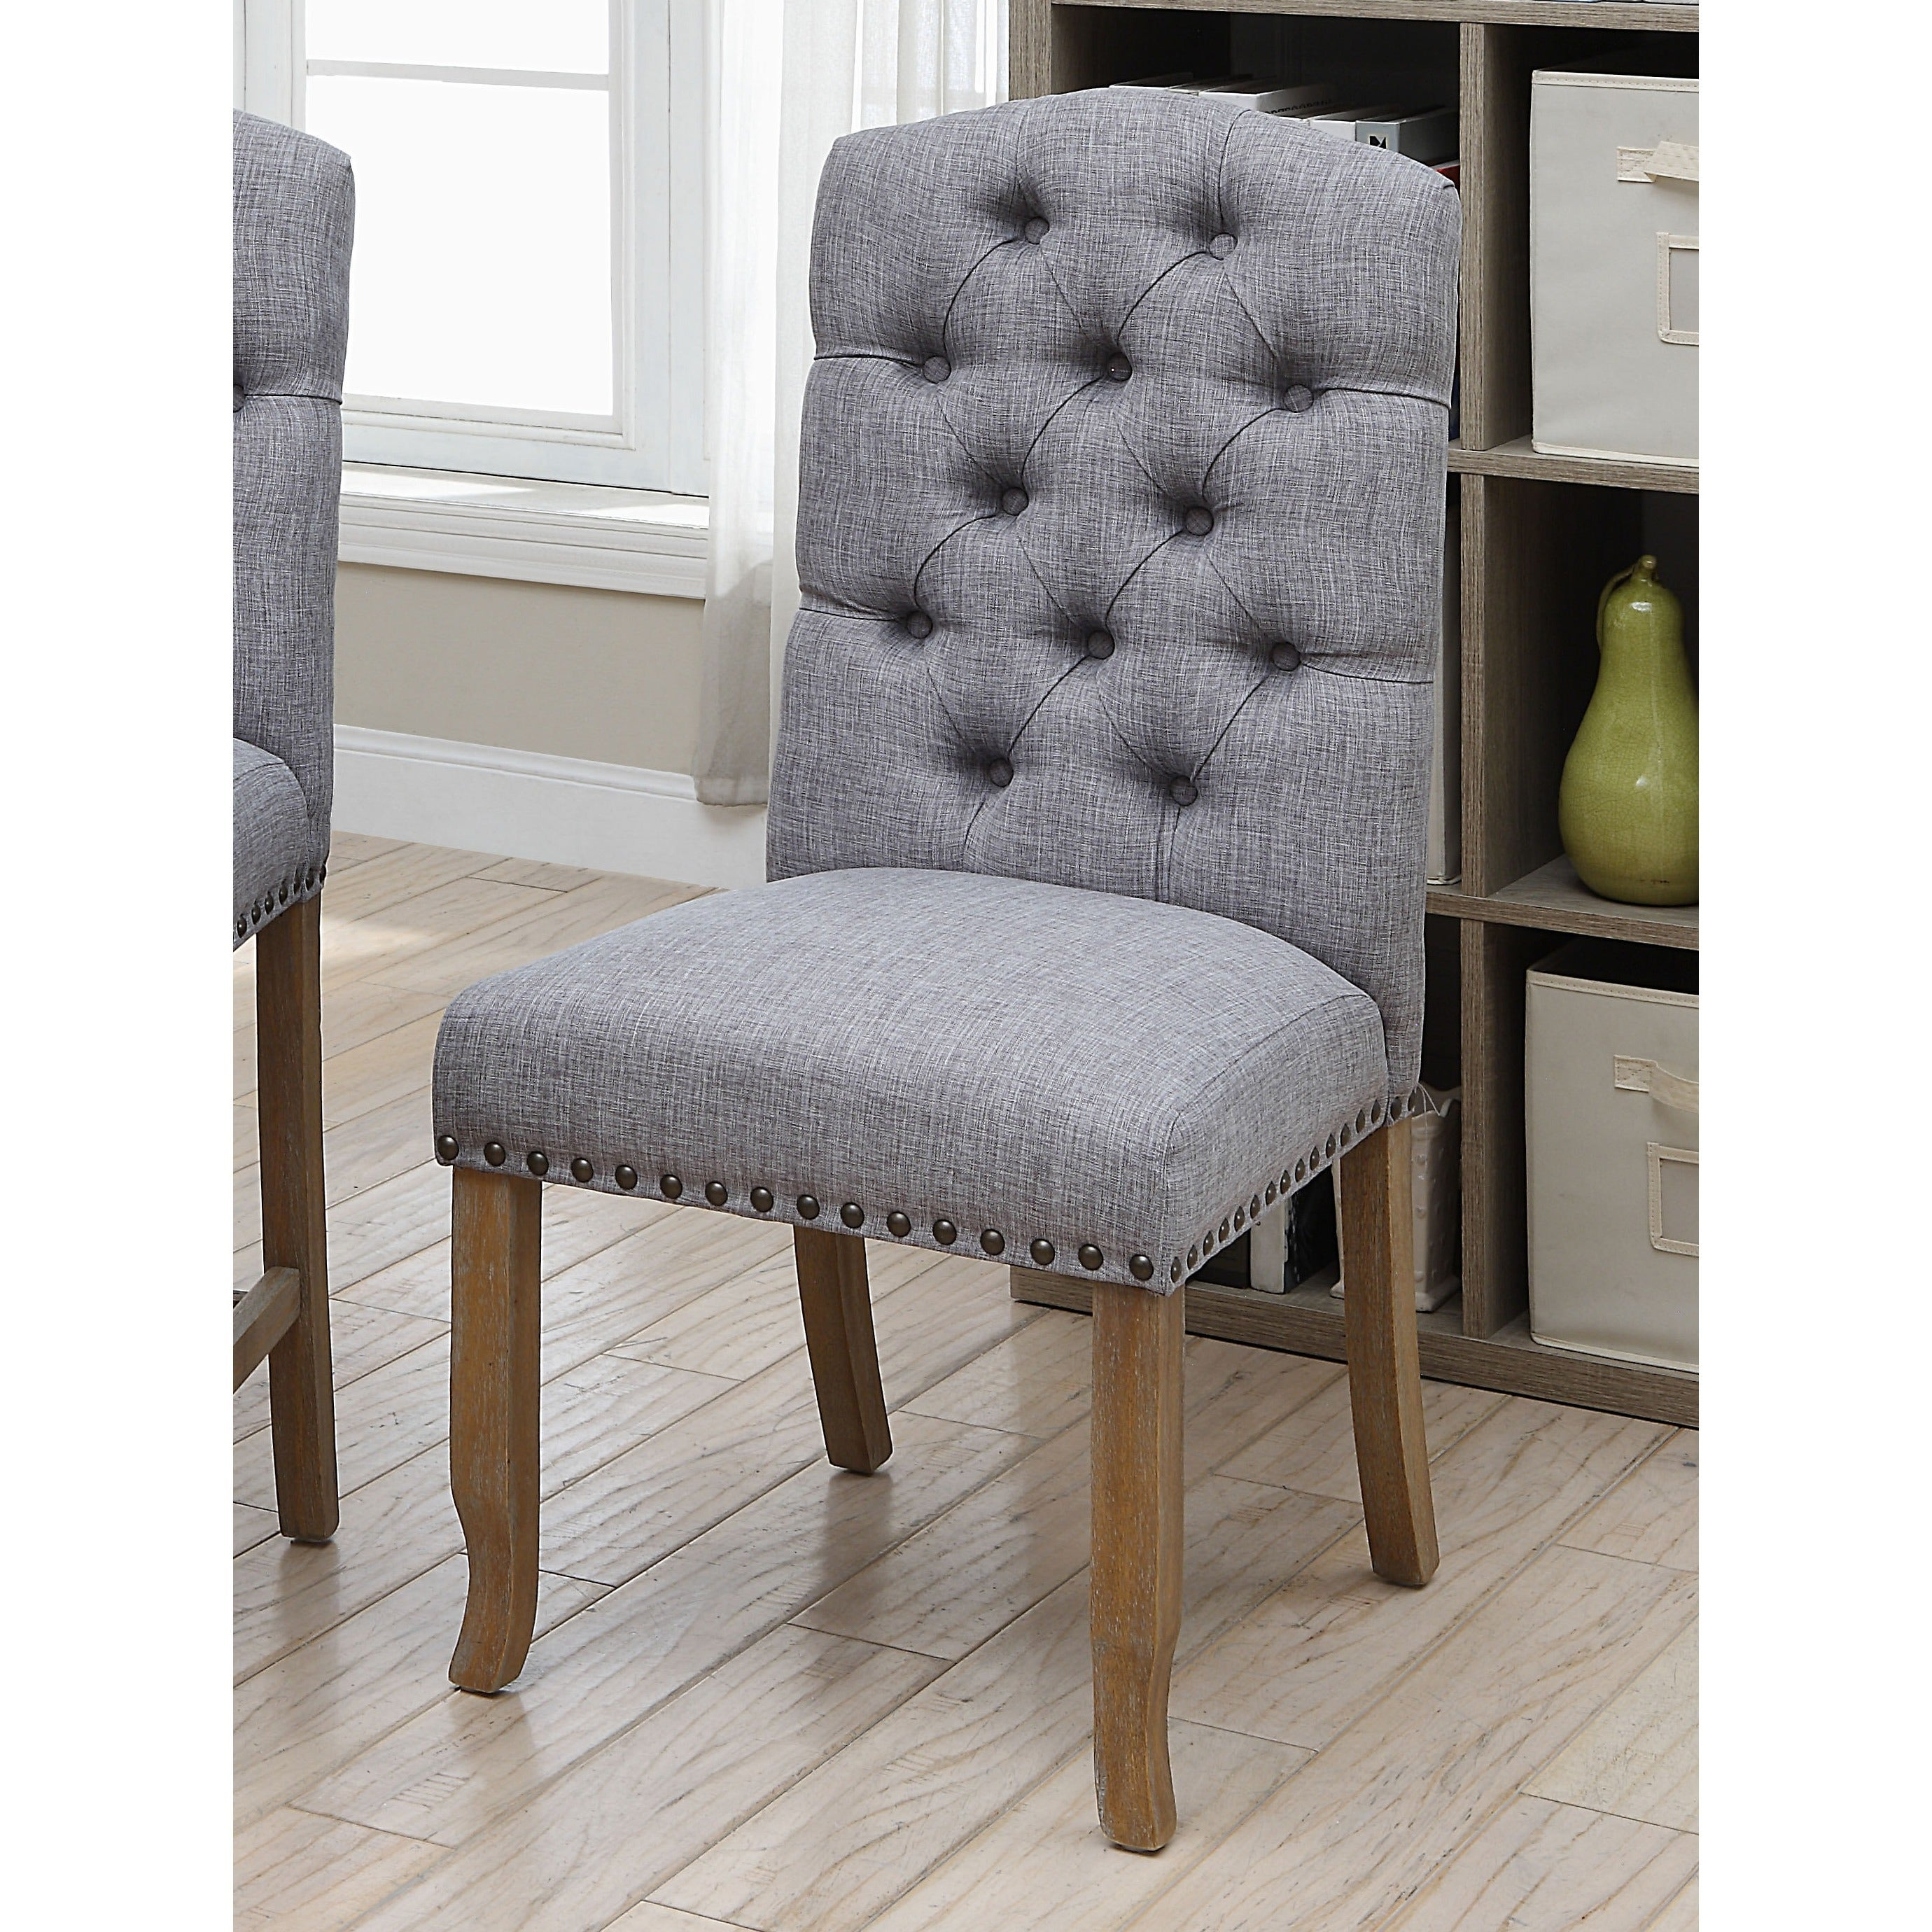 Nice Furniture Of America Matheson Rustic Tufted Dining Chairs (Set Of 2)   Free  Shipping Today   Overstock   26120439